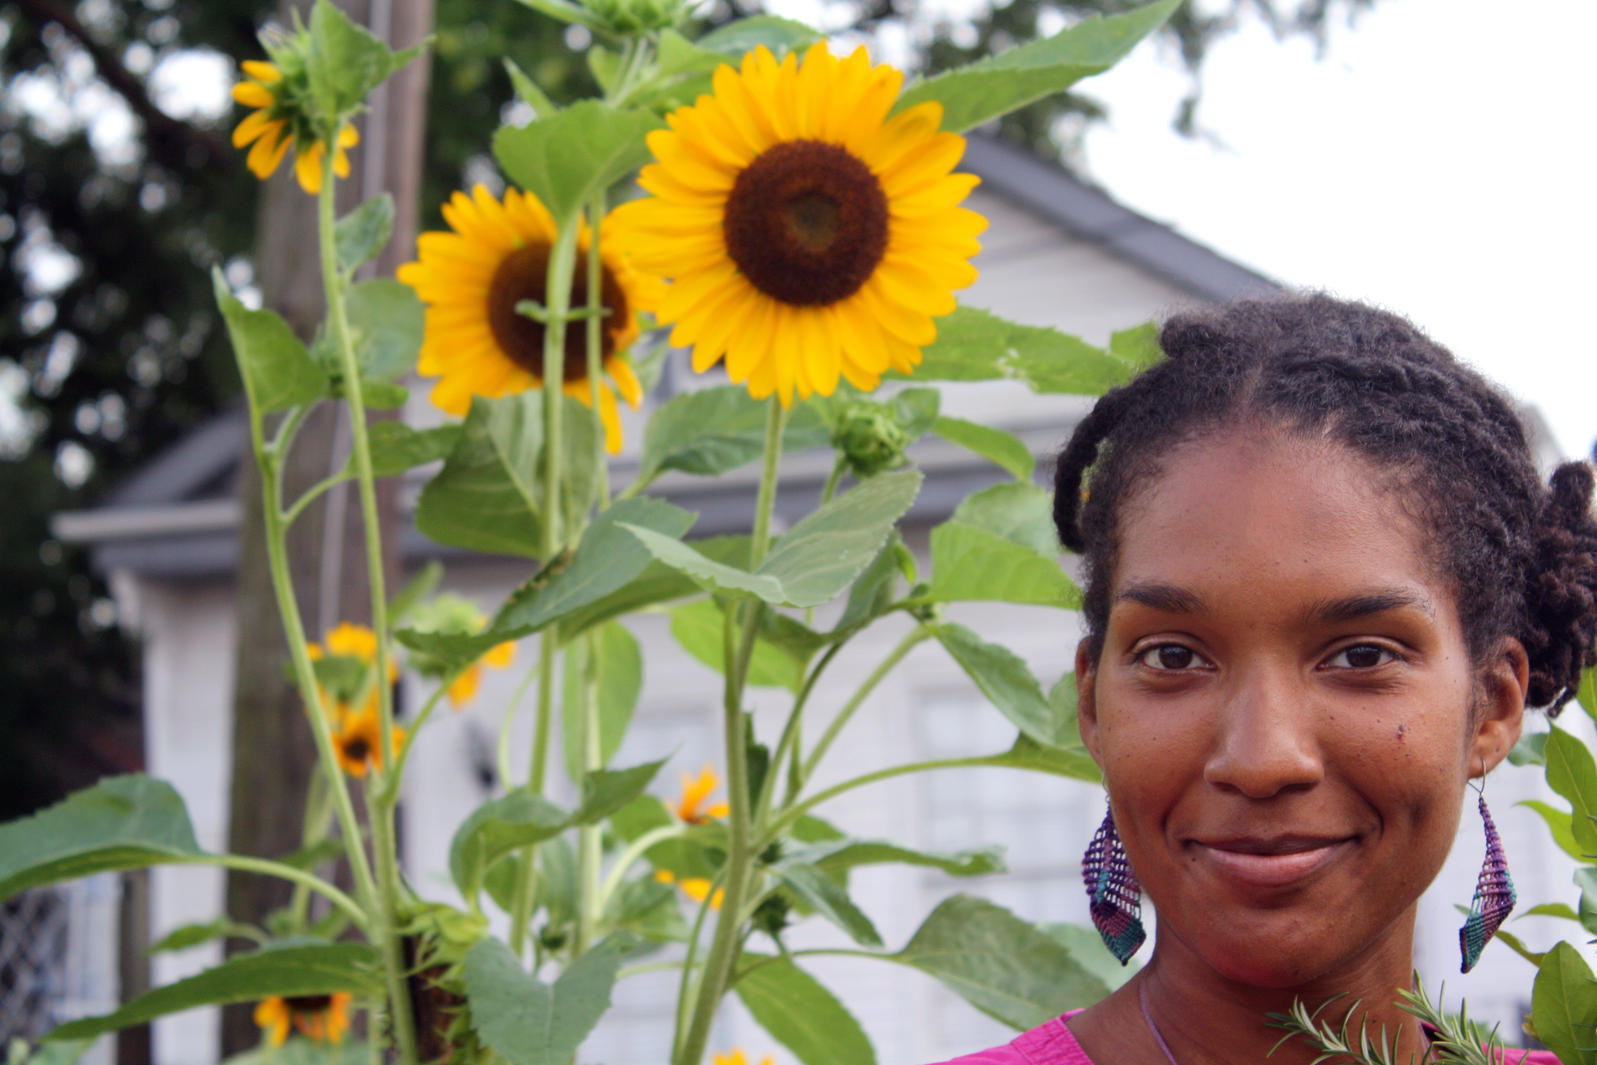 Jenga Mwendo Strengthens Community Through Gardening in New Orleans